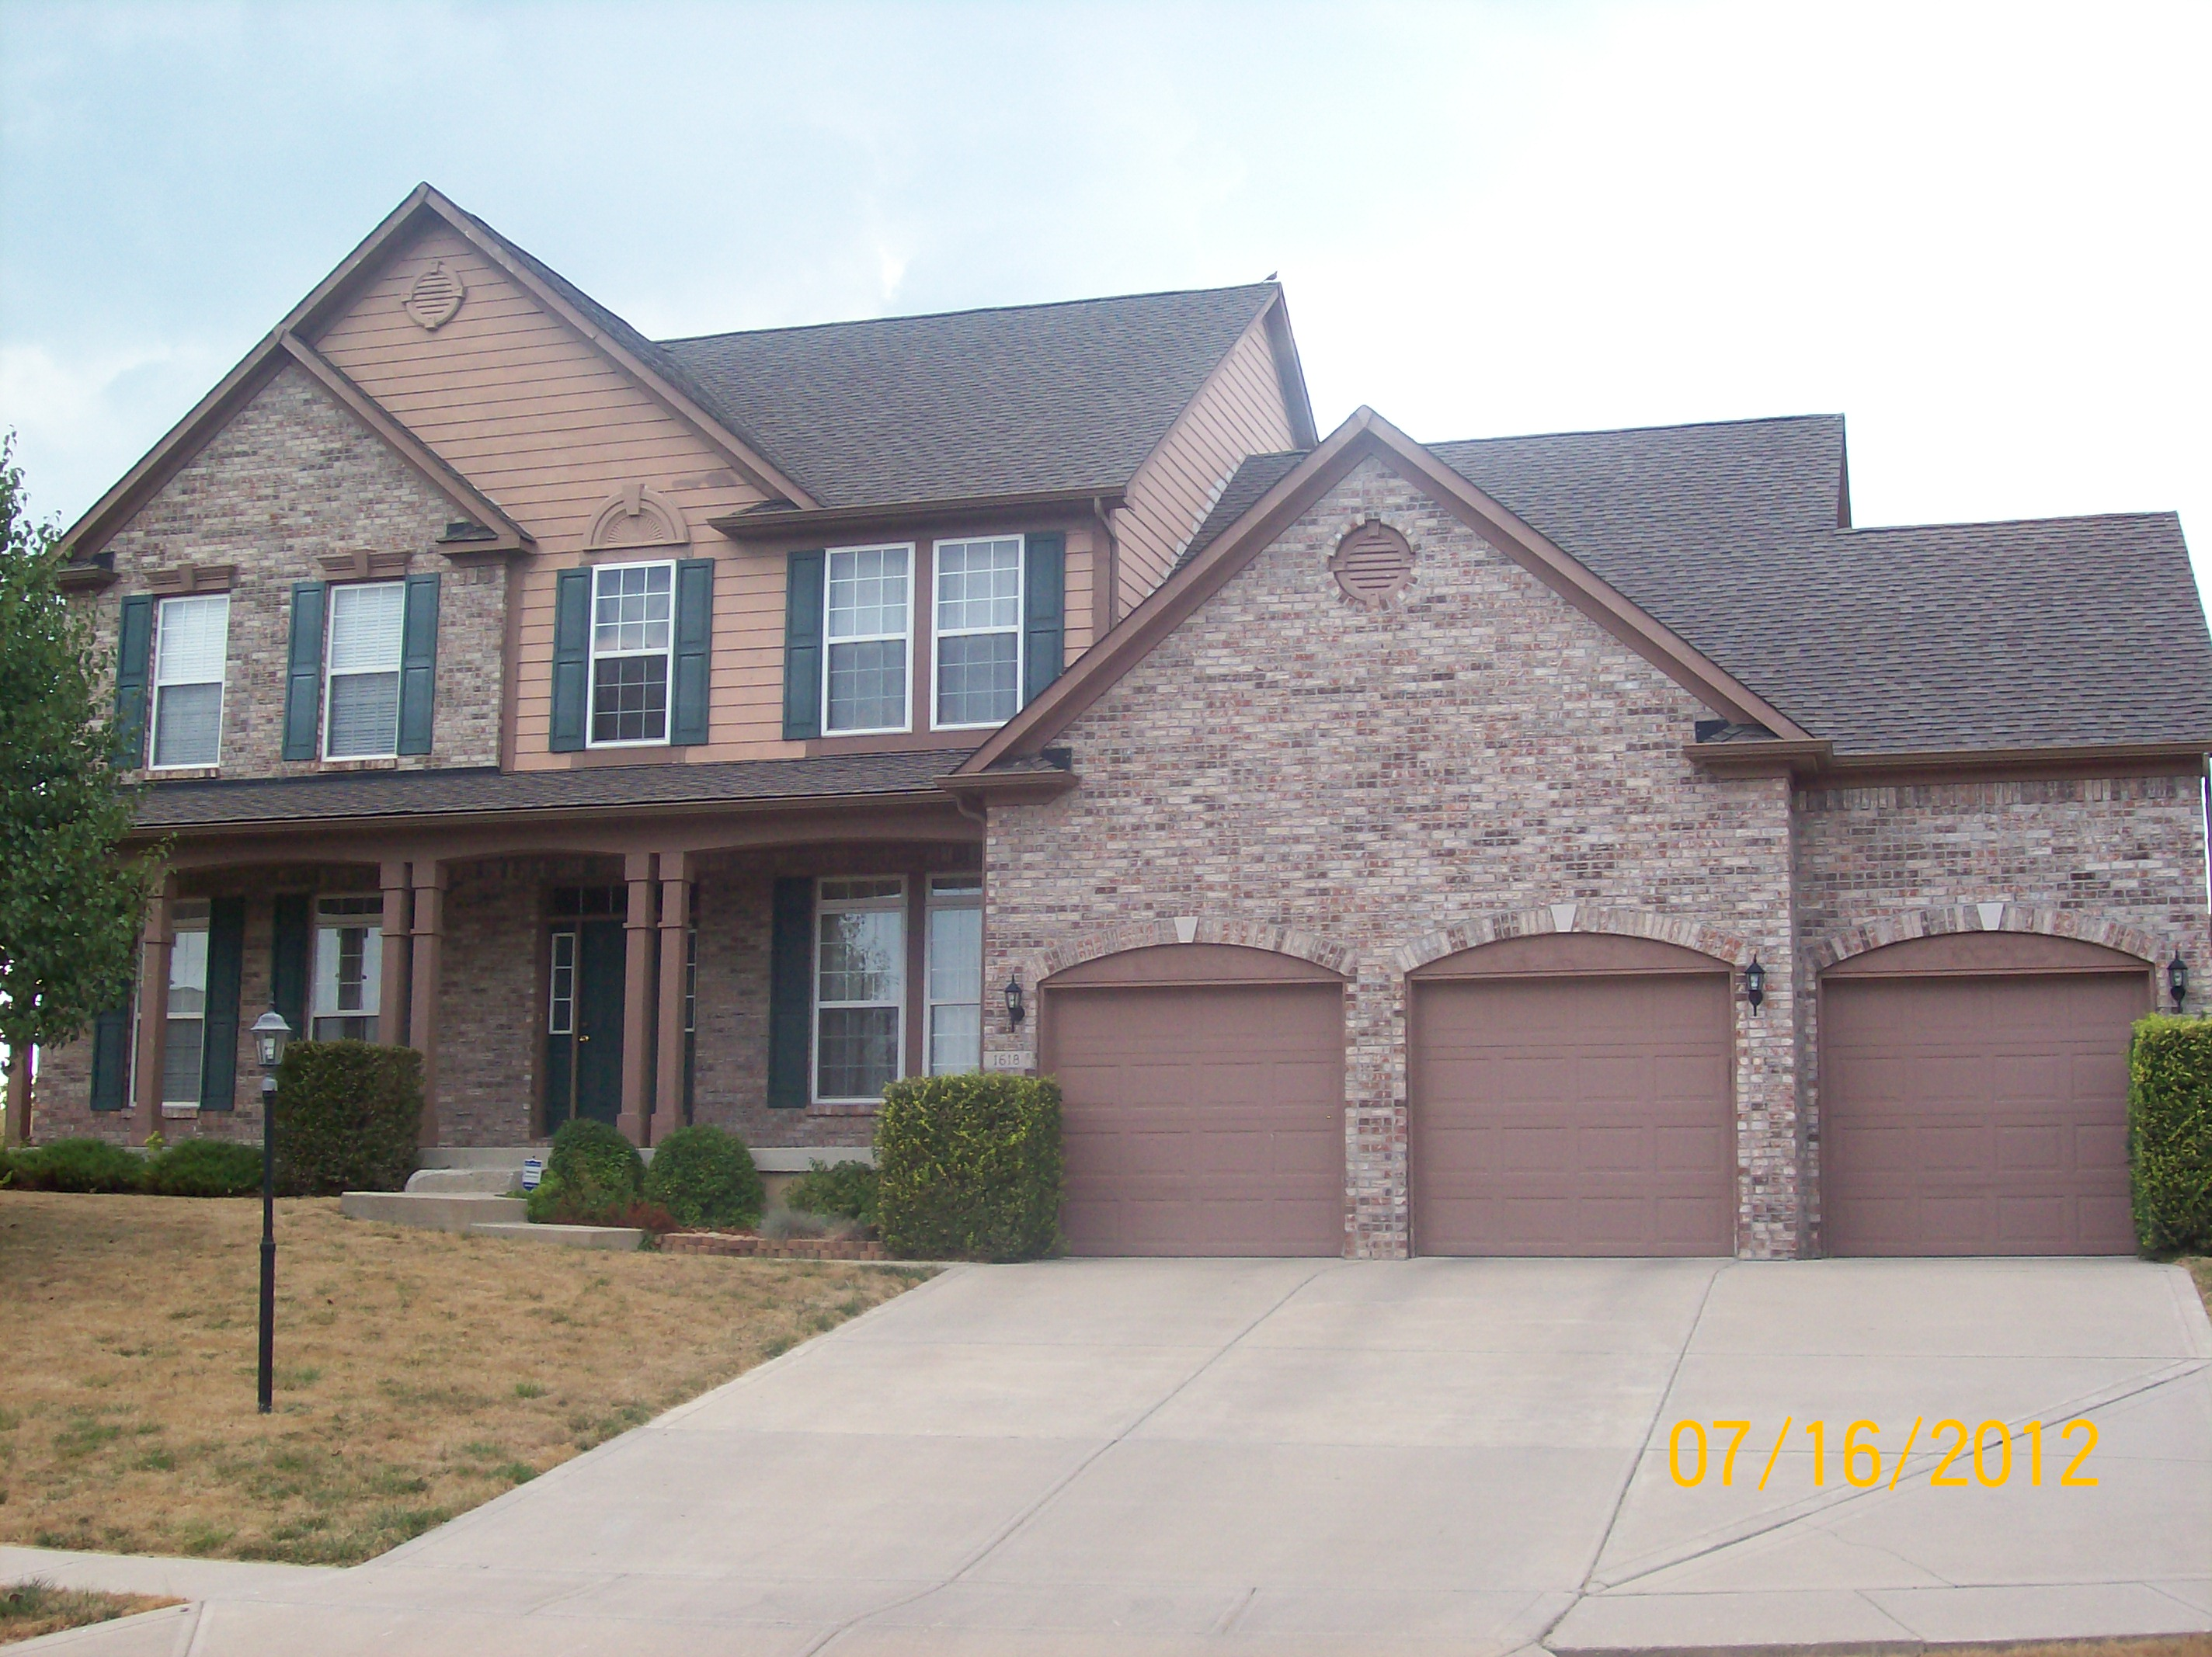 House cleaning exterior its about time house cleaning indianapolis - Exterior home cleaning ...